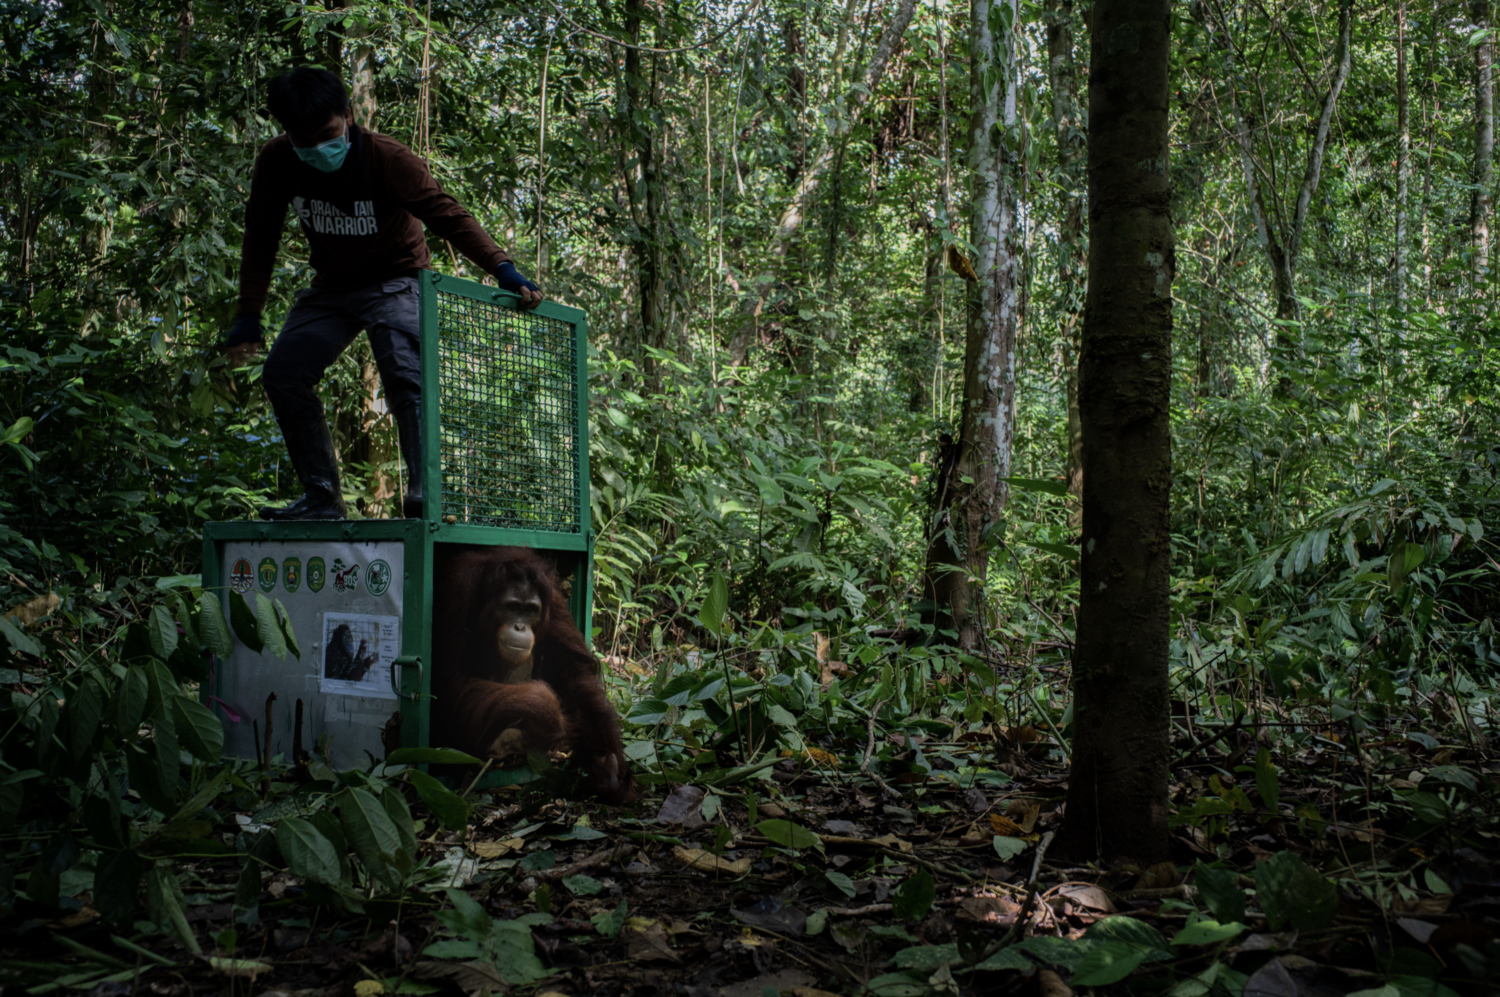 man releasing an orangutan from a crate into the rainforest in Borneo